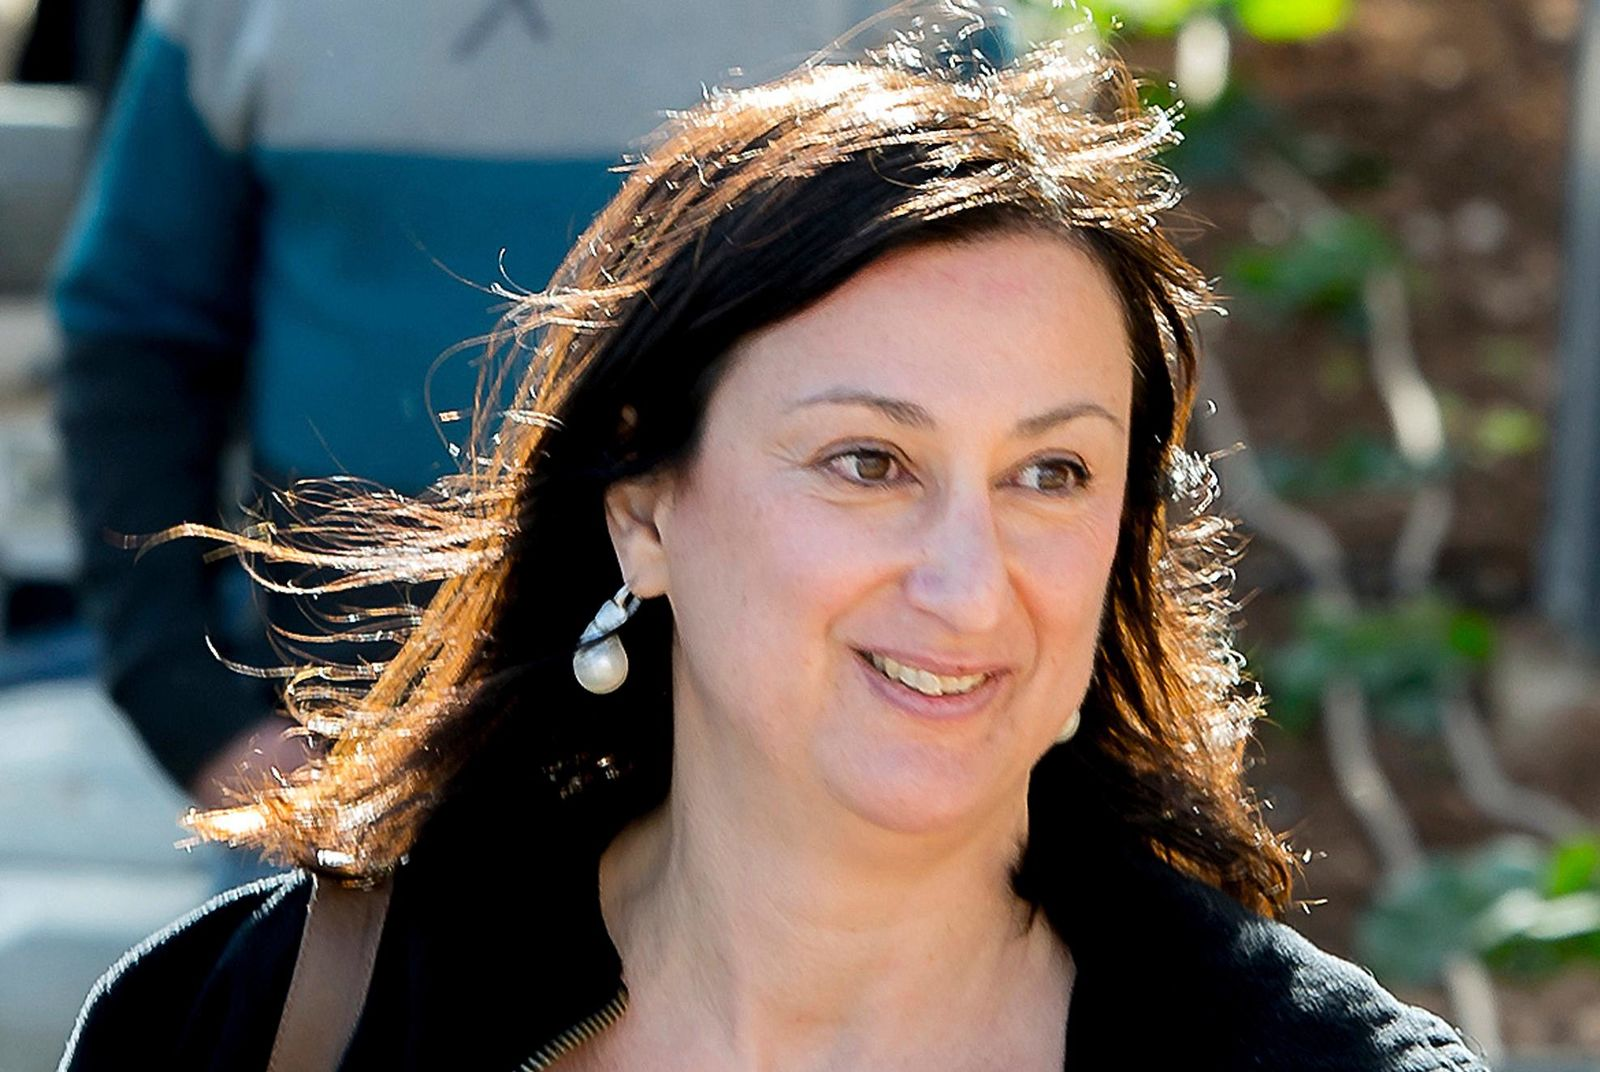 FILE - This April 4, 2016 file photo shows Maltese investigative journalist Daphne Caruana Galizia, who was killed by a car bomb in Malta on Oct. 16, 2017. (AP Photo/Jon Borg, File)